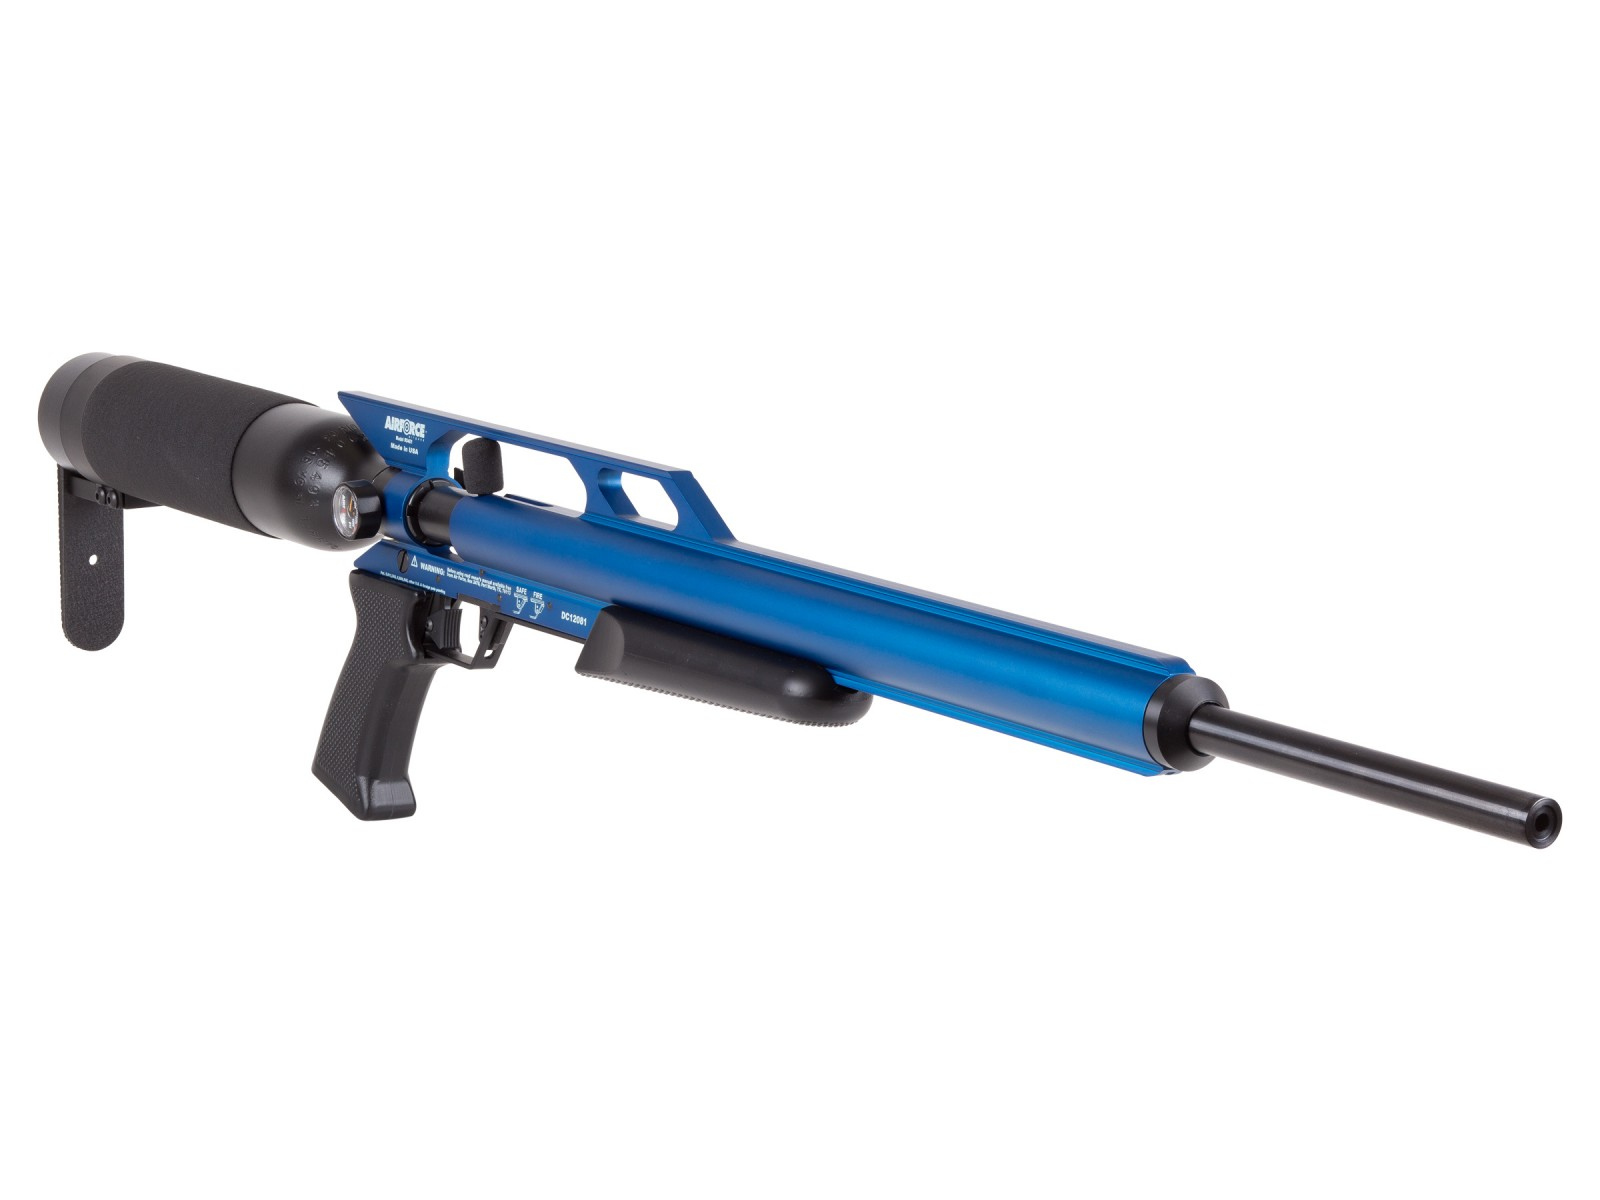 AirForce Condor PCP Air Rifle